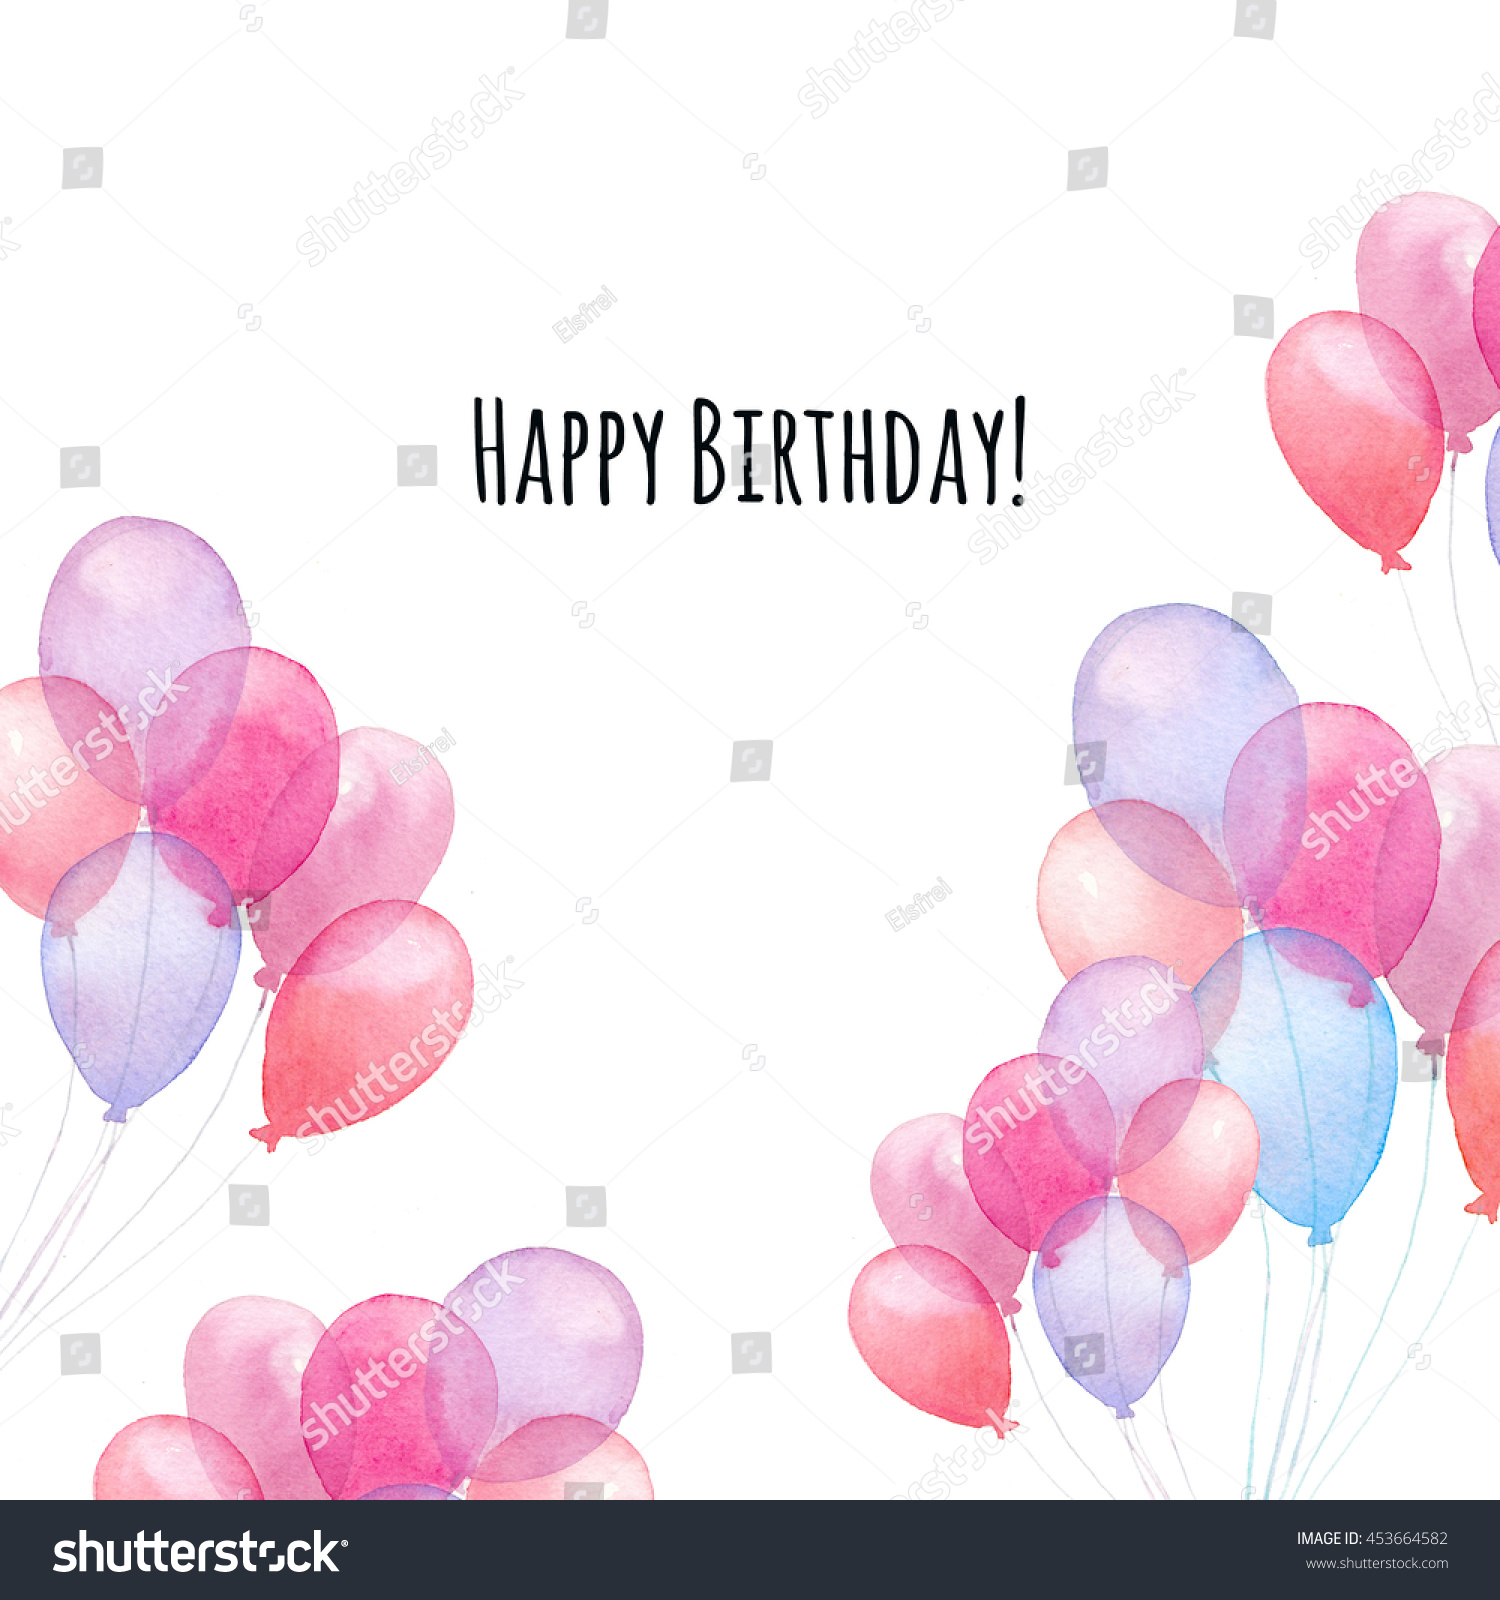 Watercolor Happy Birthday Card Hand Painted Air Balloons Square Frame Isolated On White Background